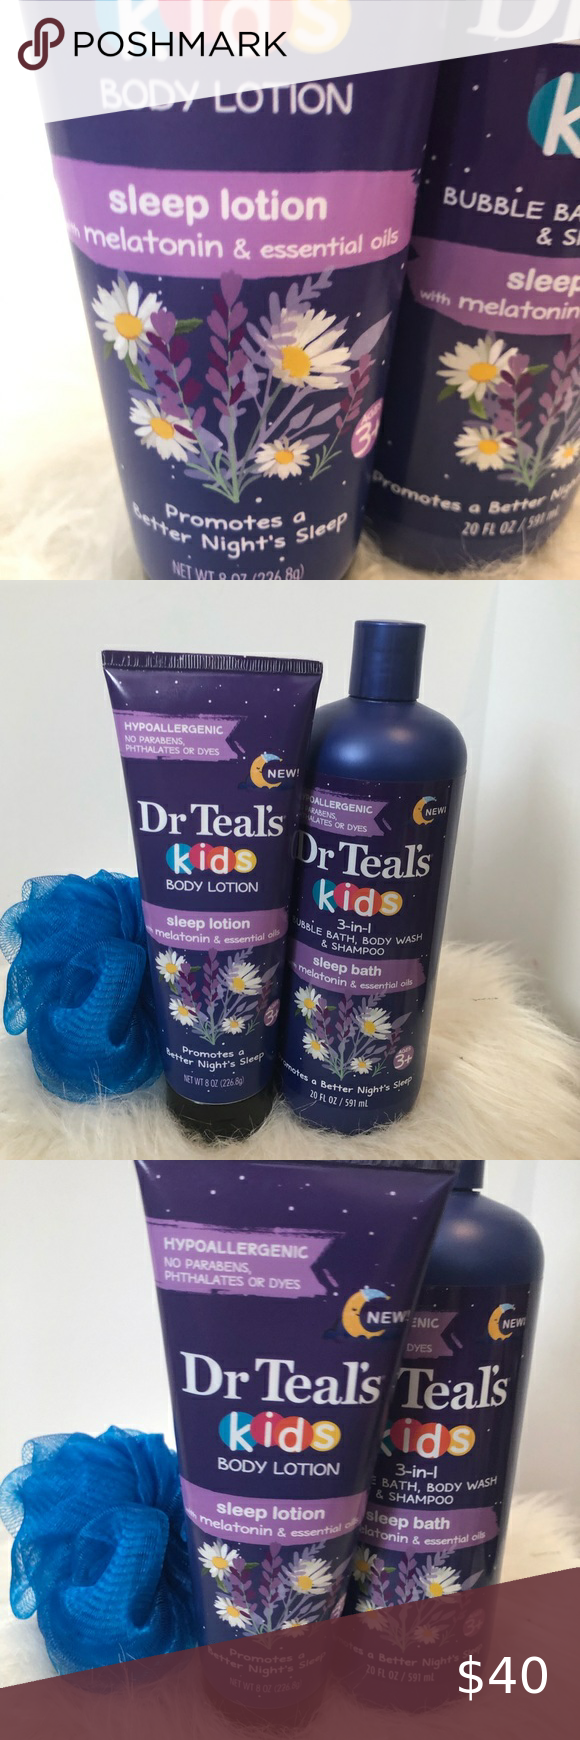 Dr Teal's Baby : teal's, TEAL'S, SLEEP, LOTION, Lotion,, Wash,